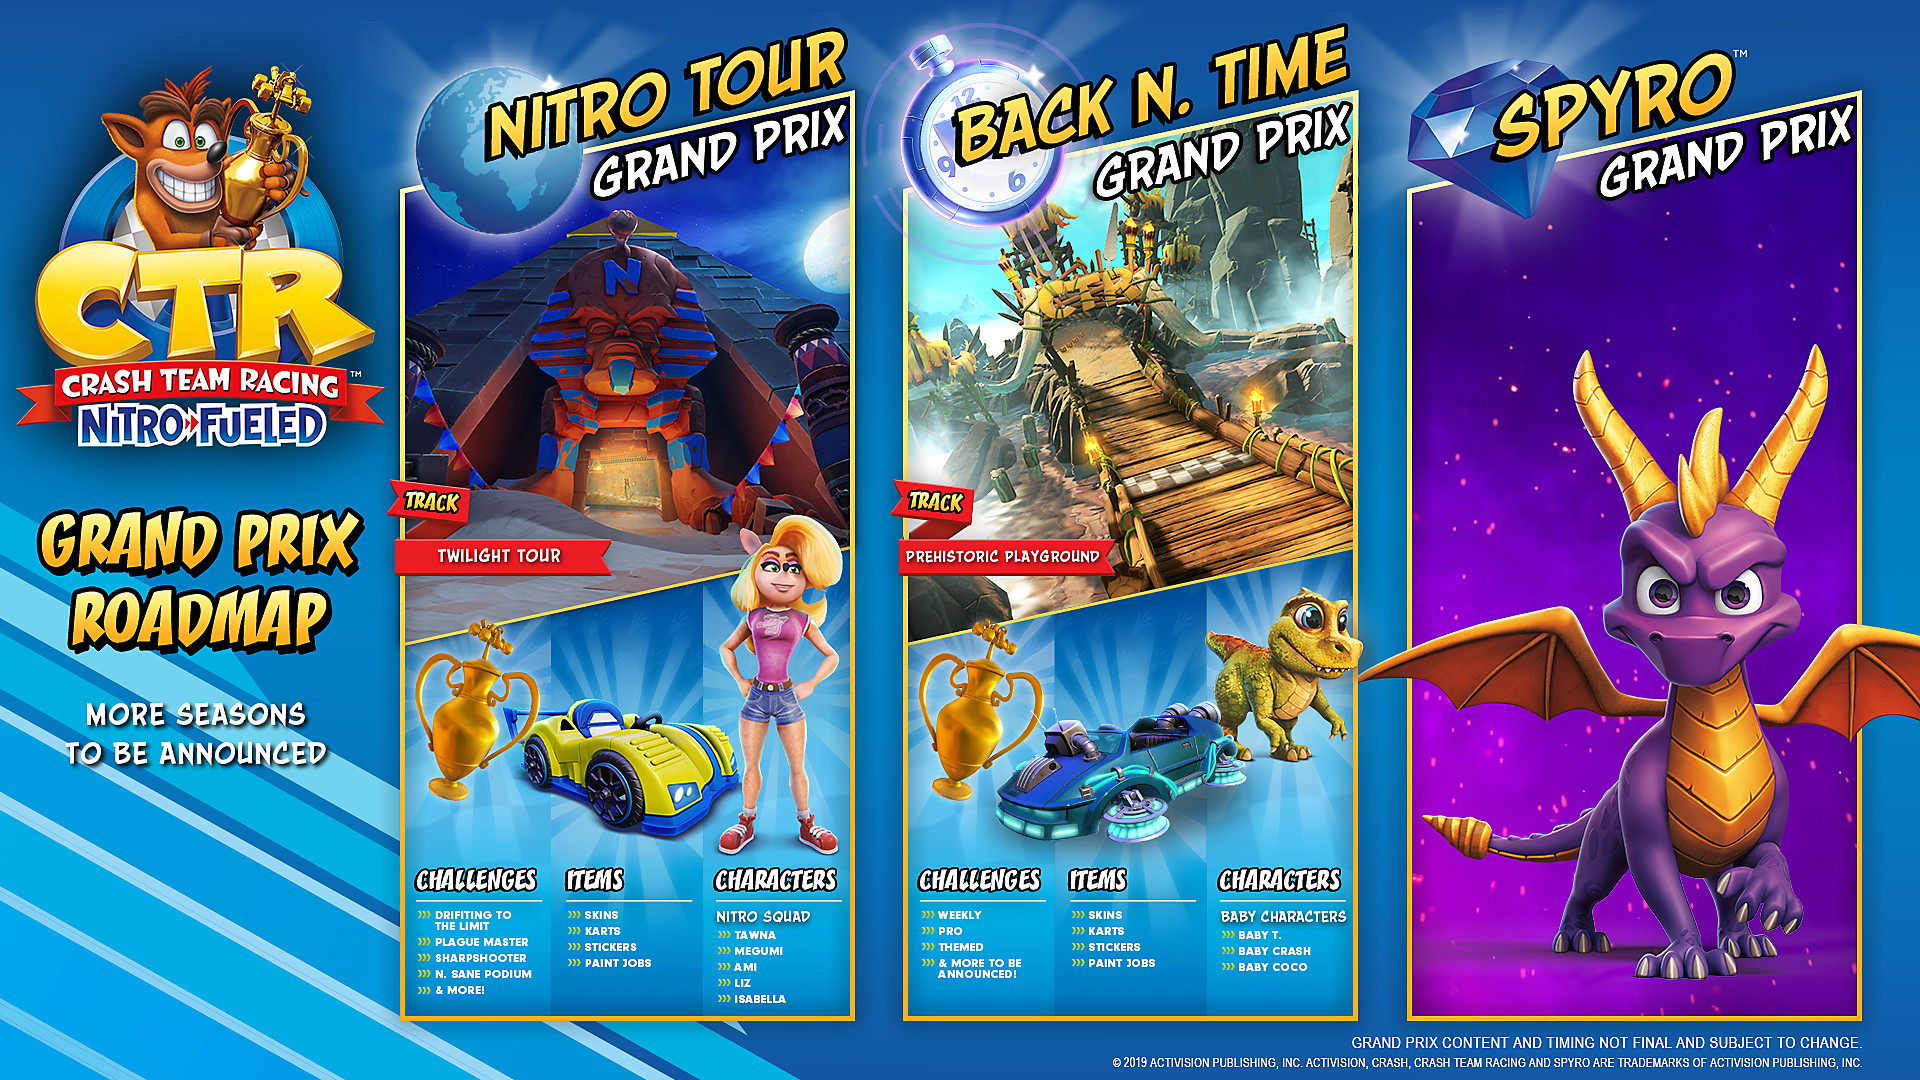 Crash Team Racing Nitro-Fueled - CTR Grand Prix Roadmap Releases